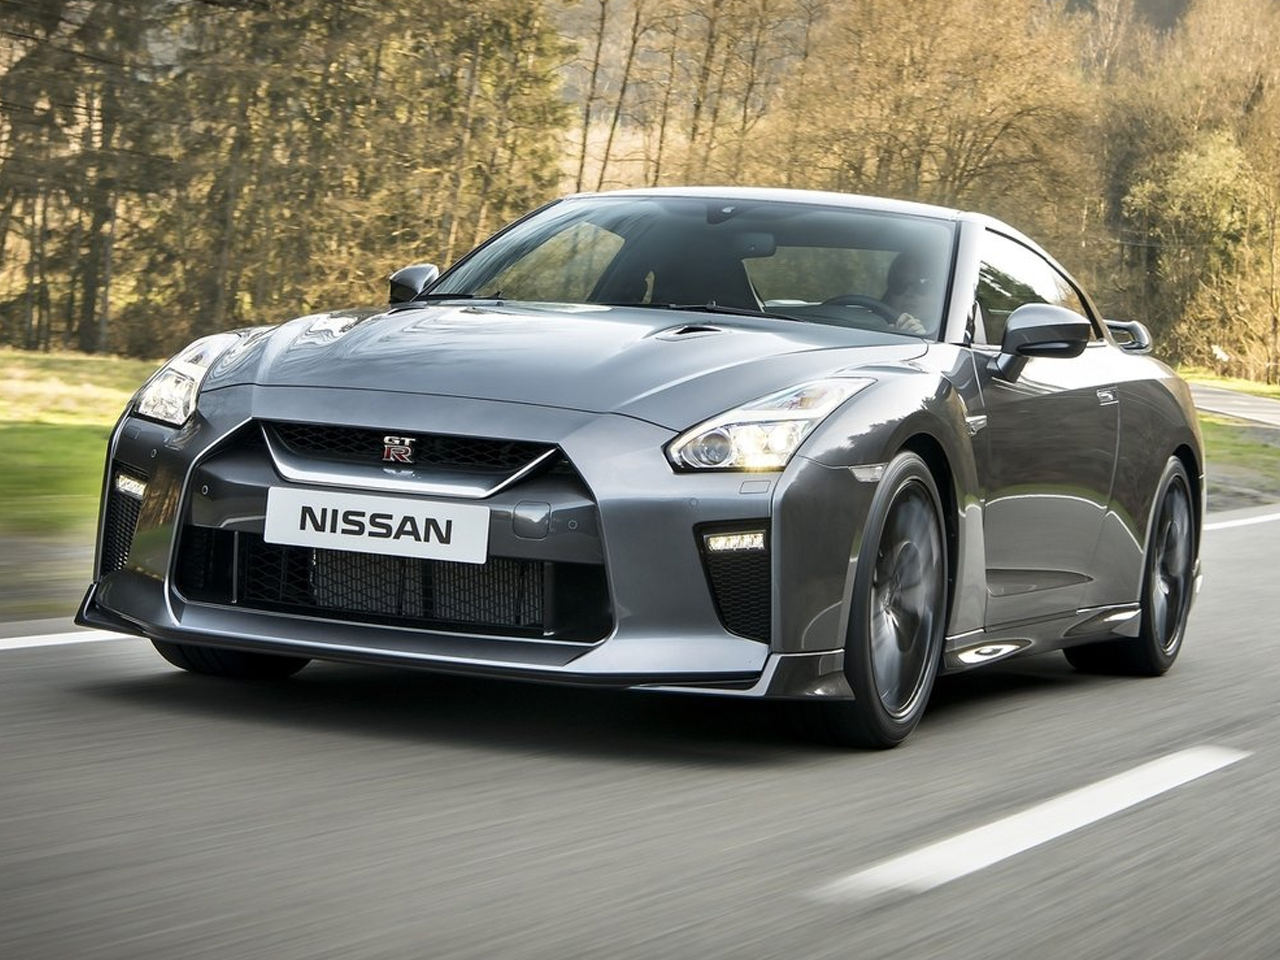 Frontal Nissan GT-R